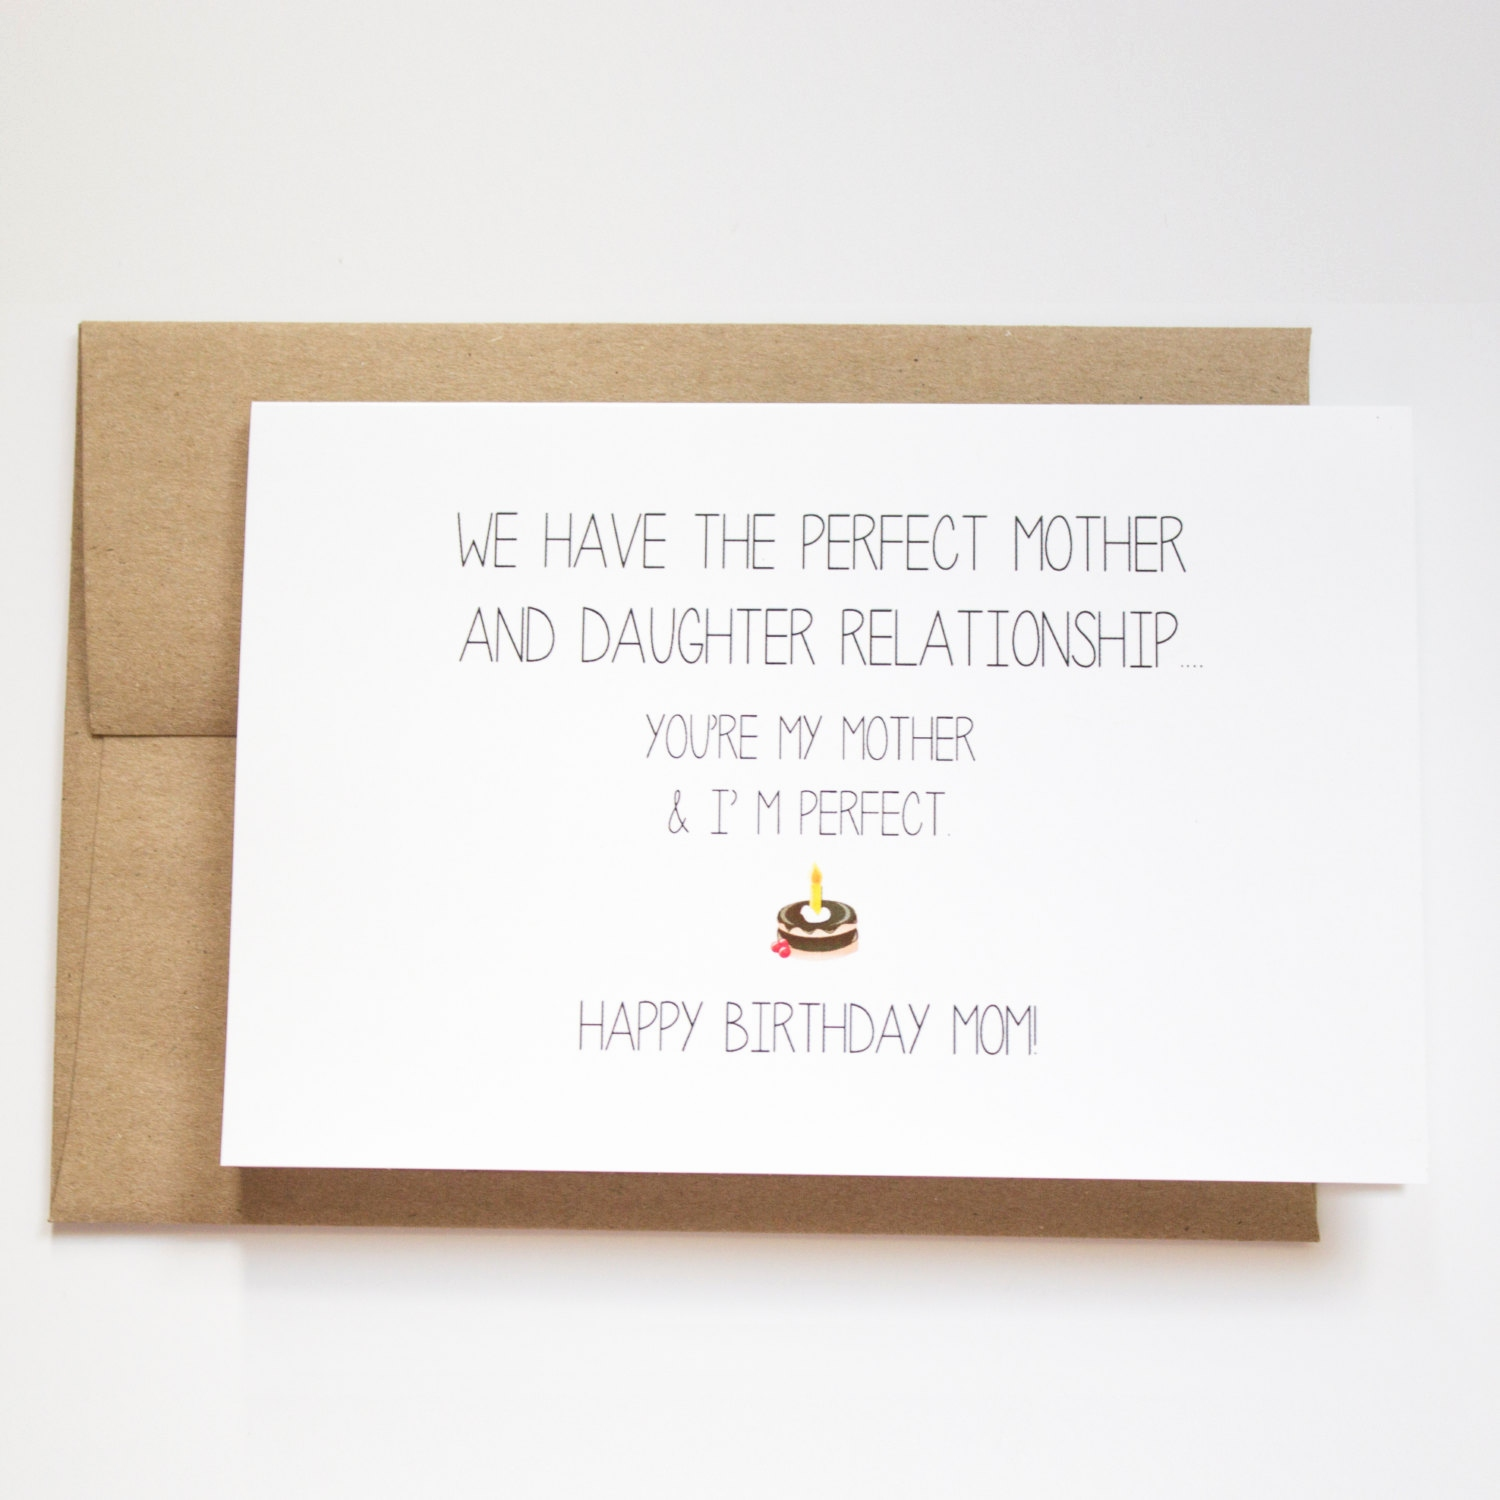 funny 25th birthday card messages ; 25th-birthday-card-messages-luxury-mom-birthday-card-funny-funny-birthday-cards-for-mom-of-25th-birthday-card-messages